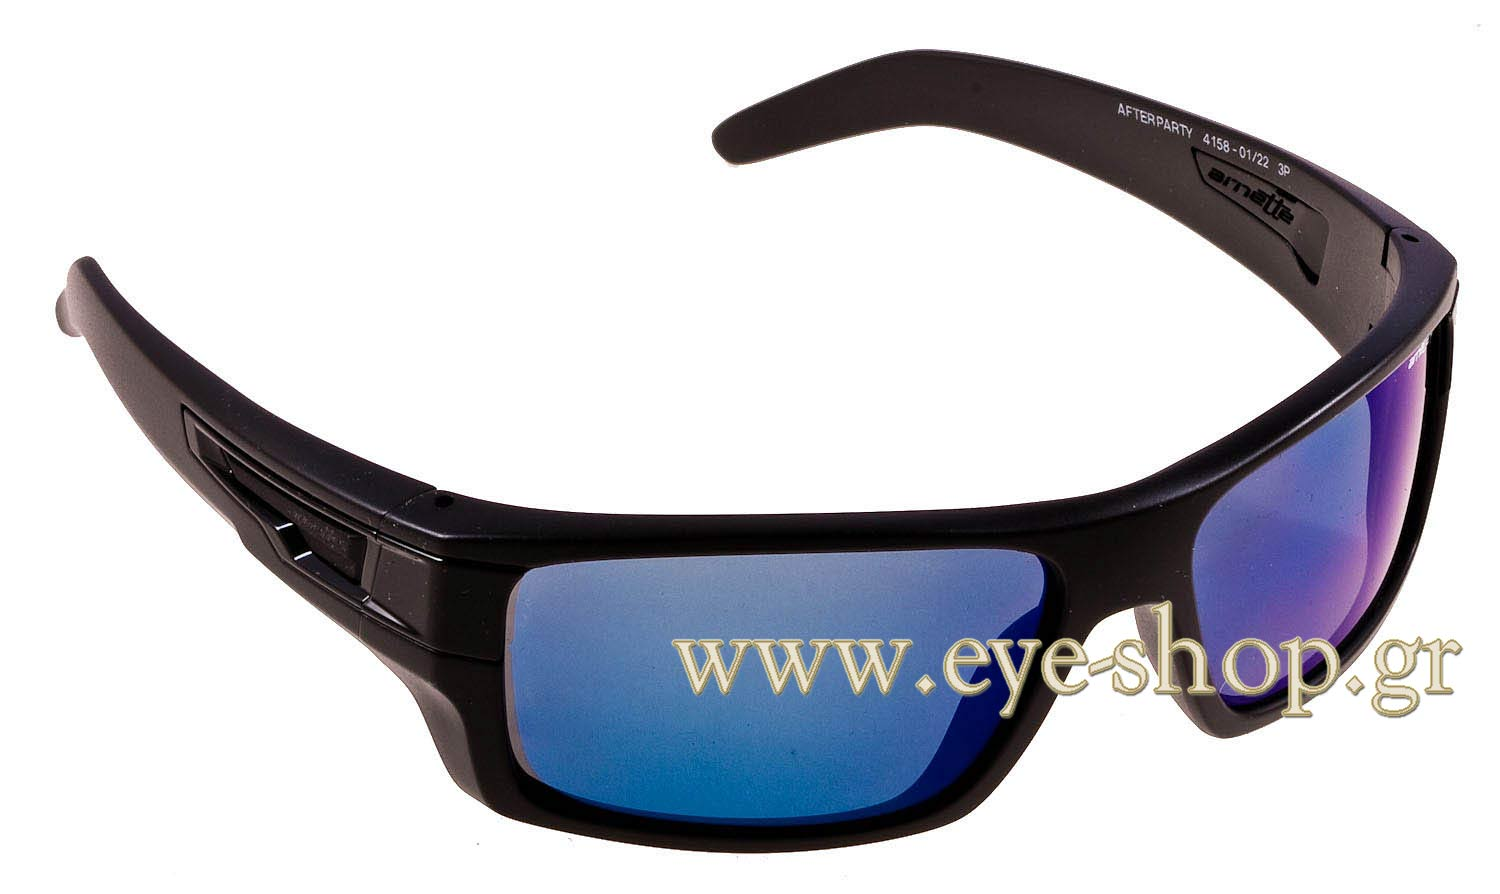 Enlarge Colors Discontinued. Sunglasses Arnette AFTER PARTY 4158 01 22 b0a314f27d3